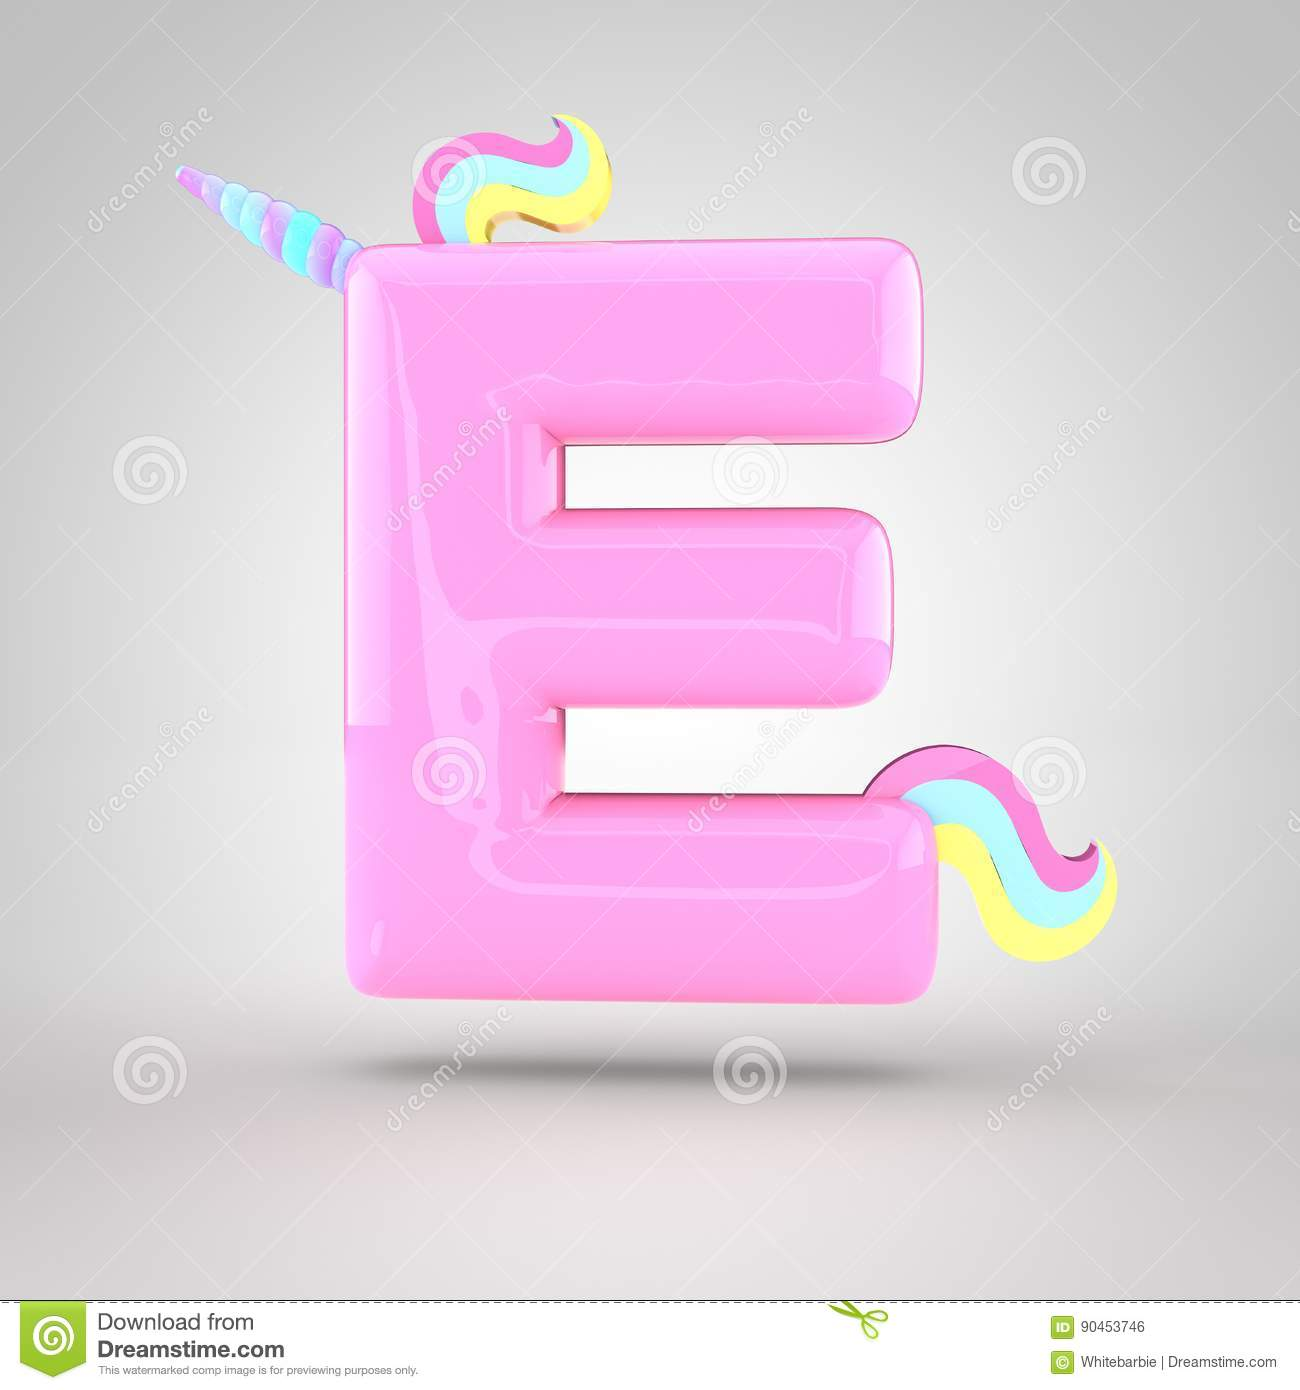 Cute Unicorn Pink Letter E Uppercase Stock Illustration ...